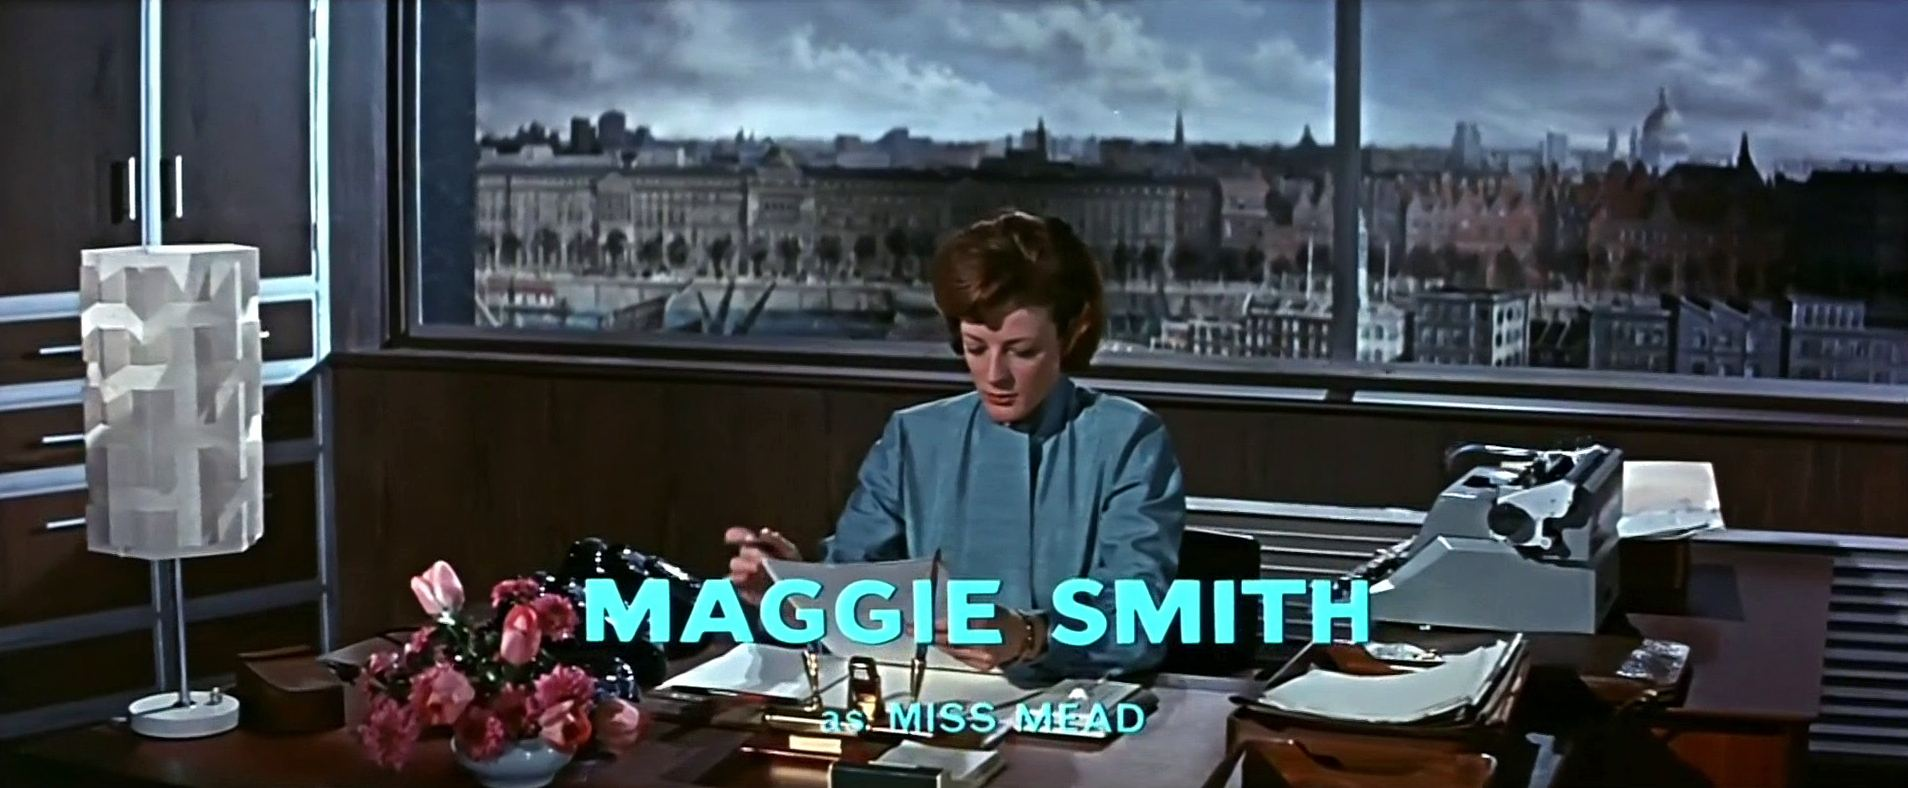 Main title from The VIPs (1963) (8). Maggie Smith as Miss Mead